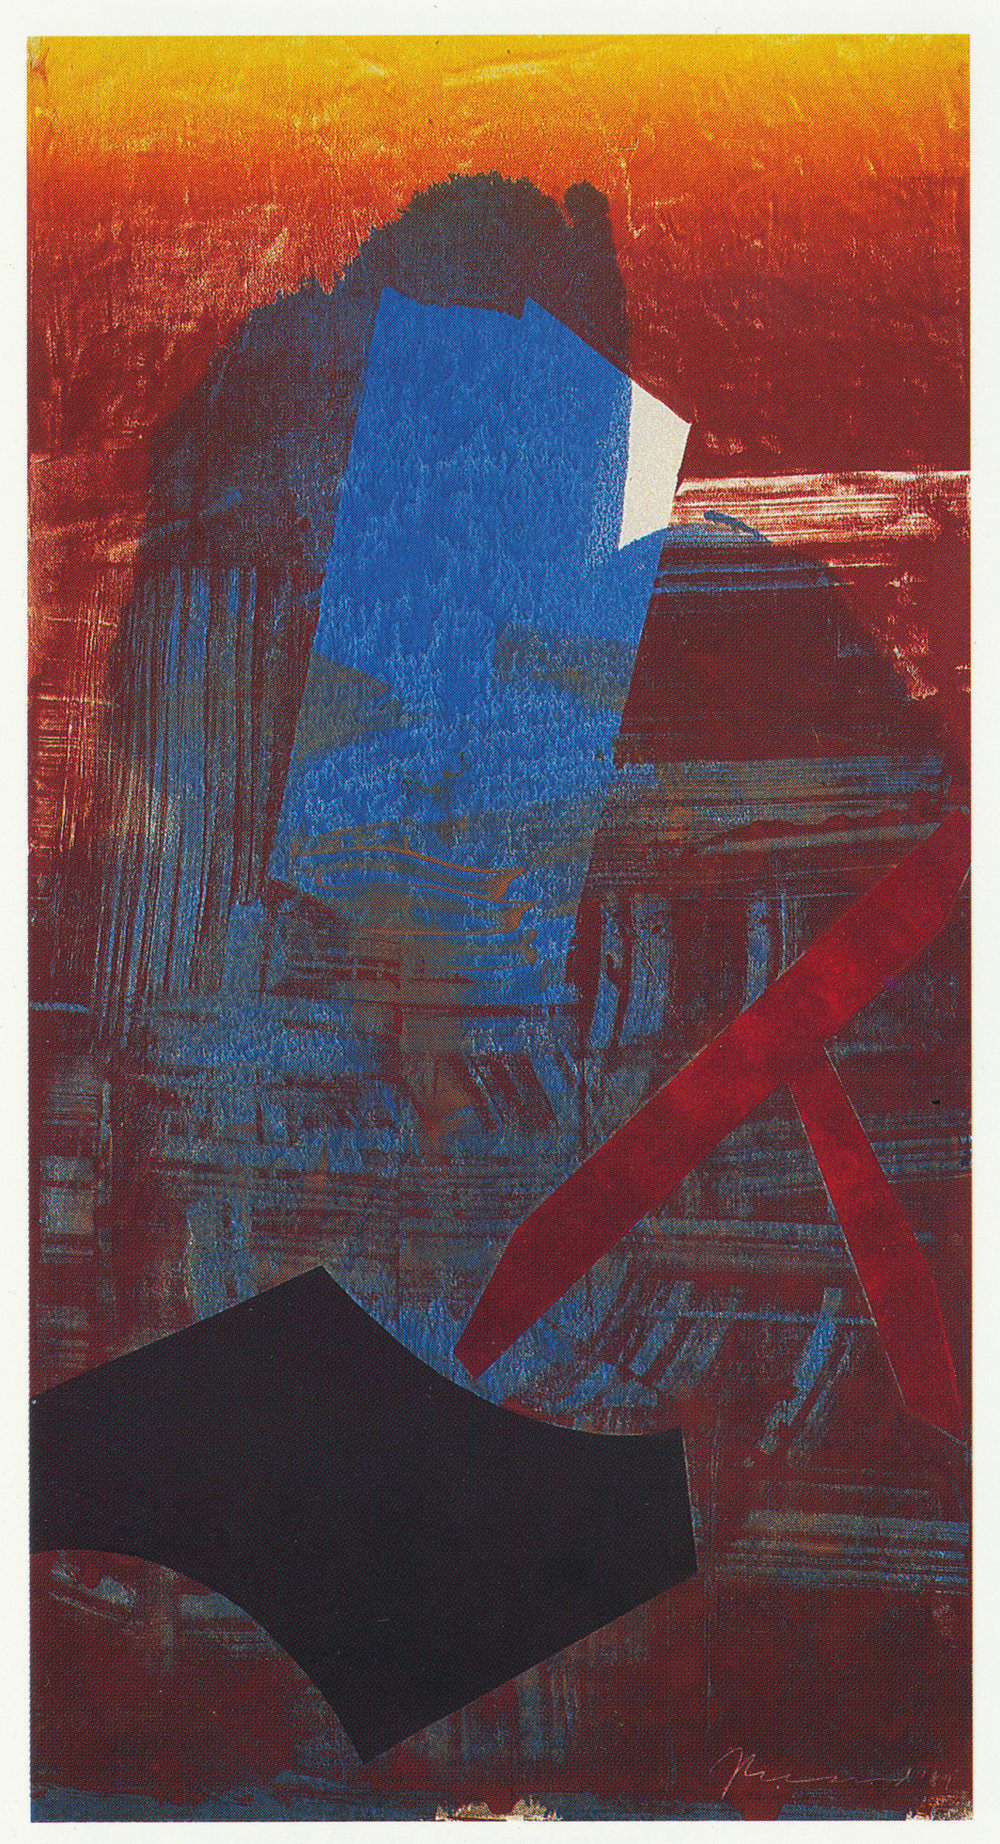 101) 'Blank Thought, Blood Remembering' IX, 1989 Monotype 185x99cm.jpeg